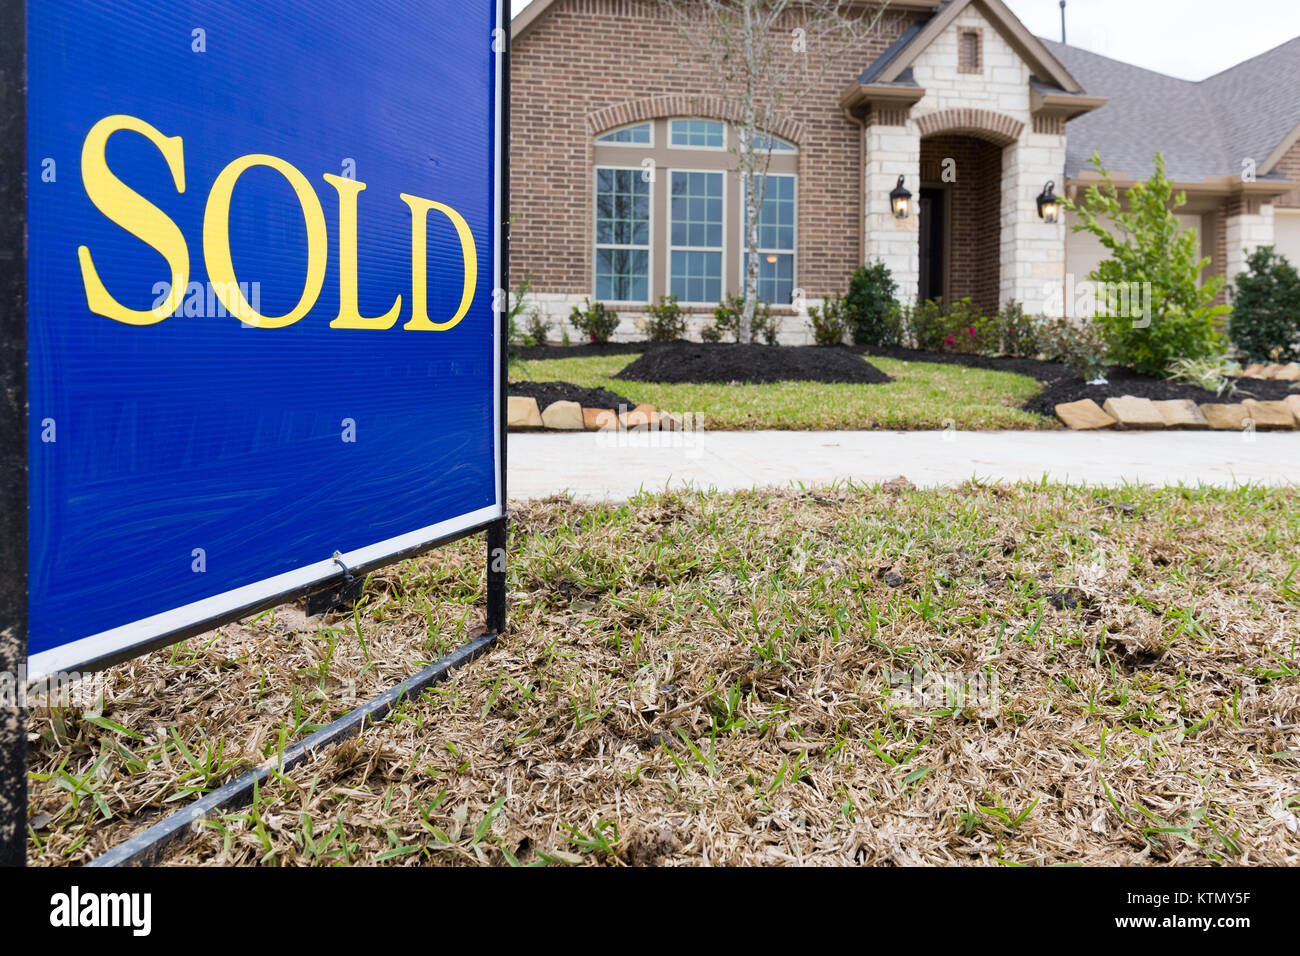 Sold sign posted in front a new construction house - Stock Image